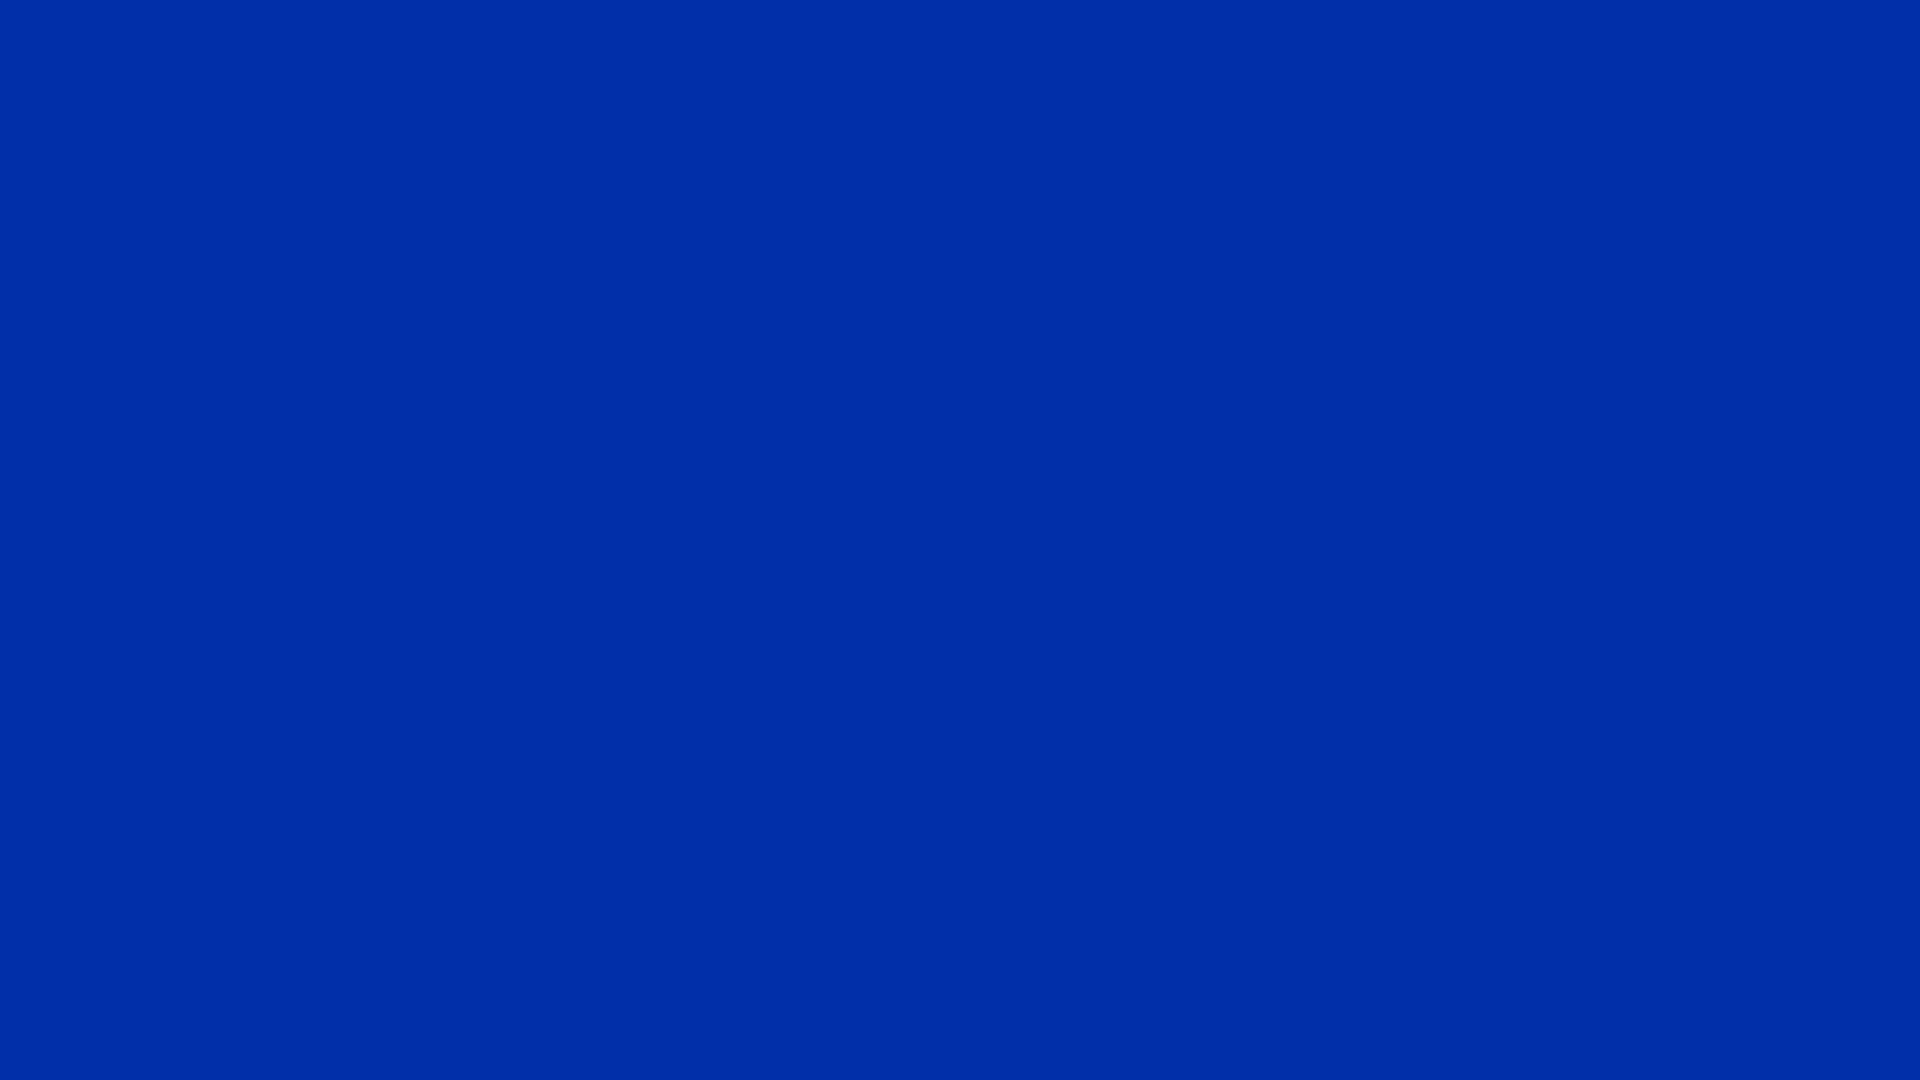 Cute Wallpapers Free Download International Klein Blue Wallpaper High Definition